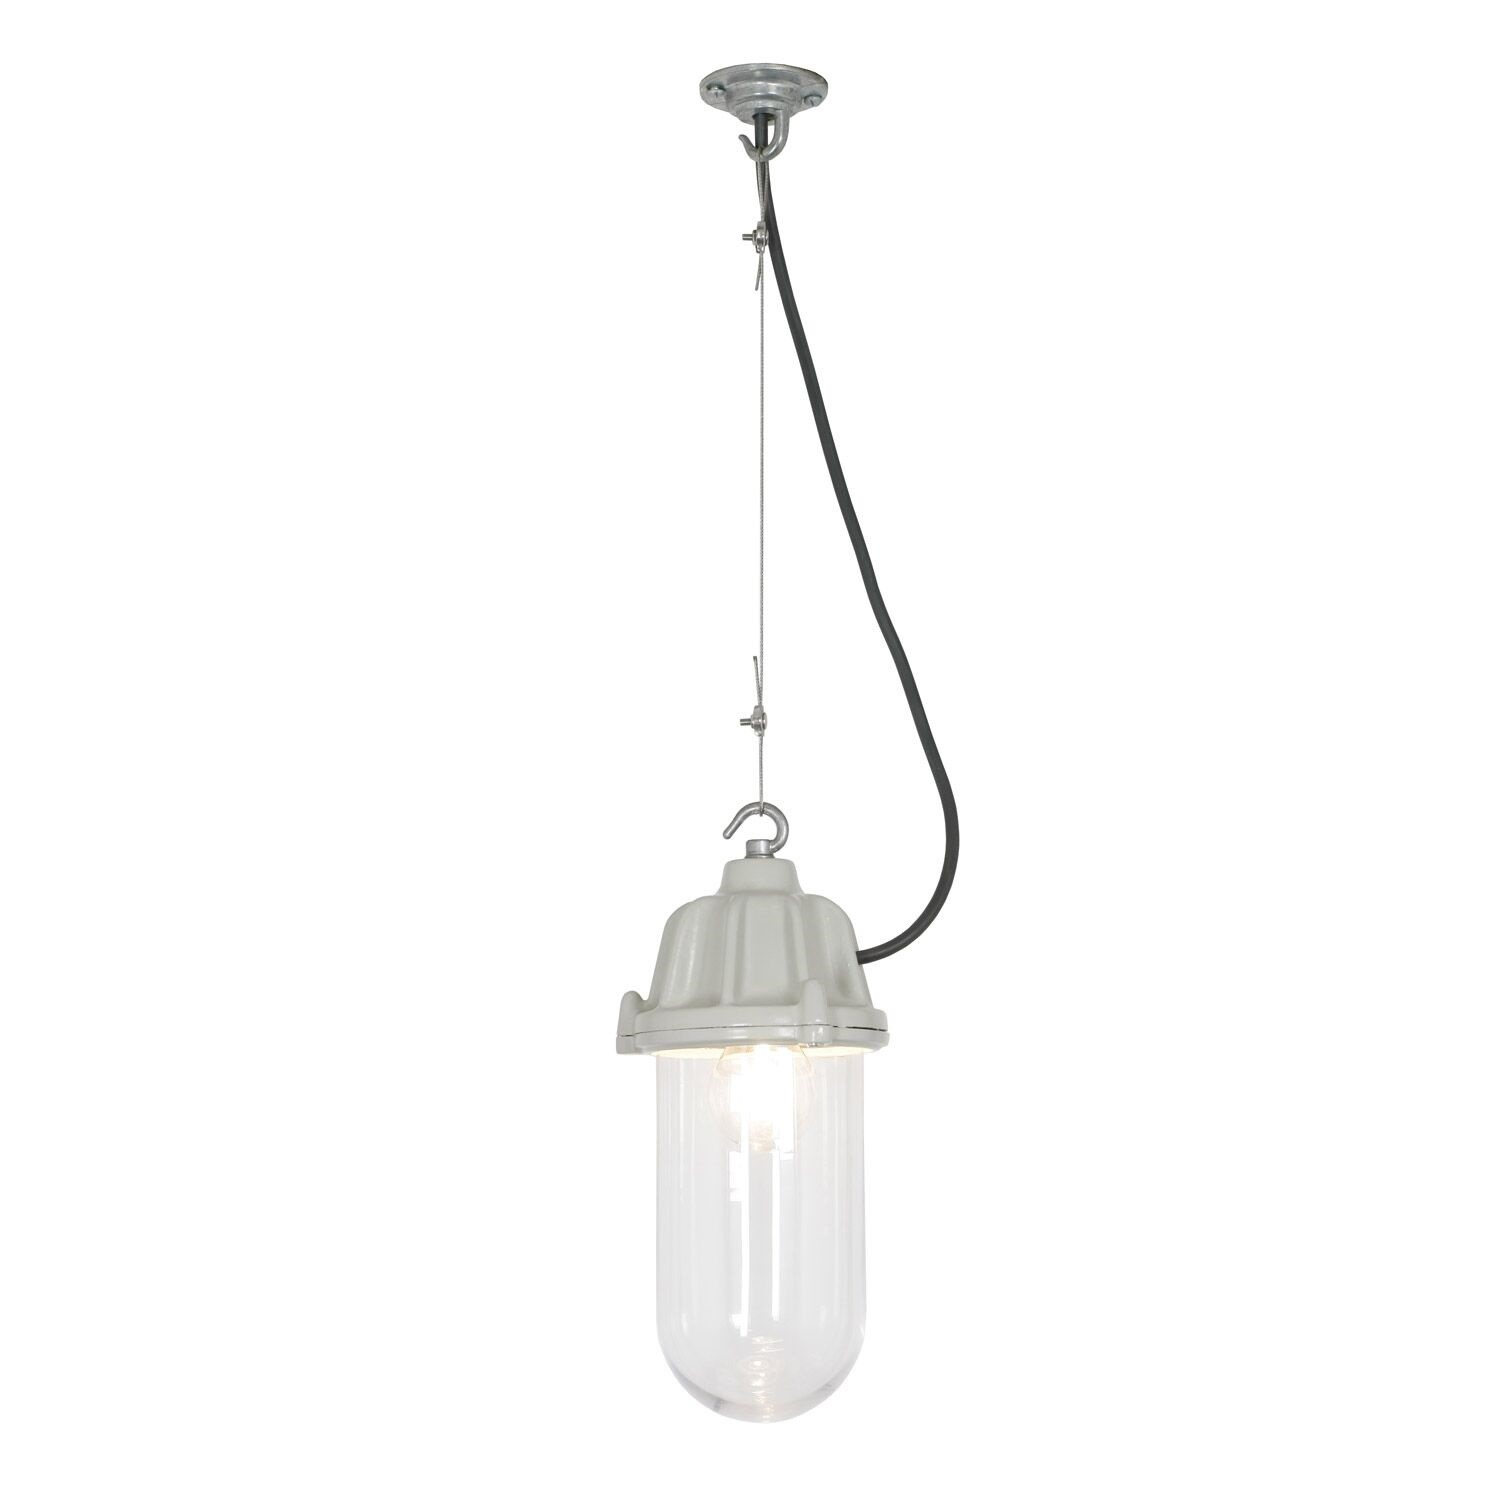 Dockside Pendant Light 7674 Putty grey, Clear glass